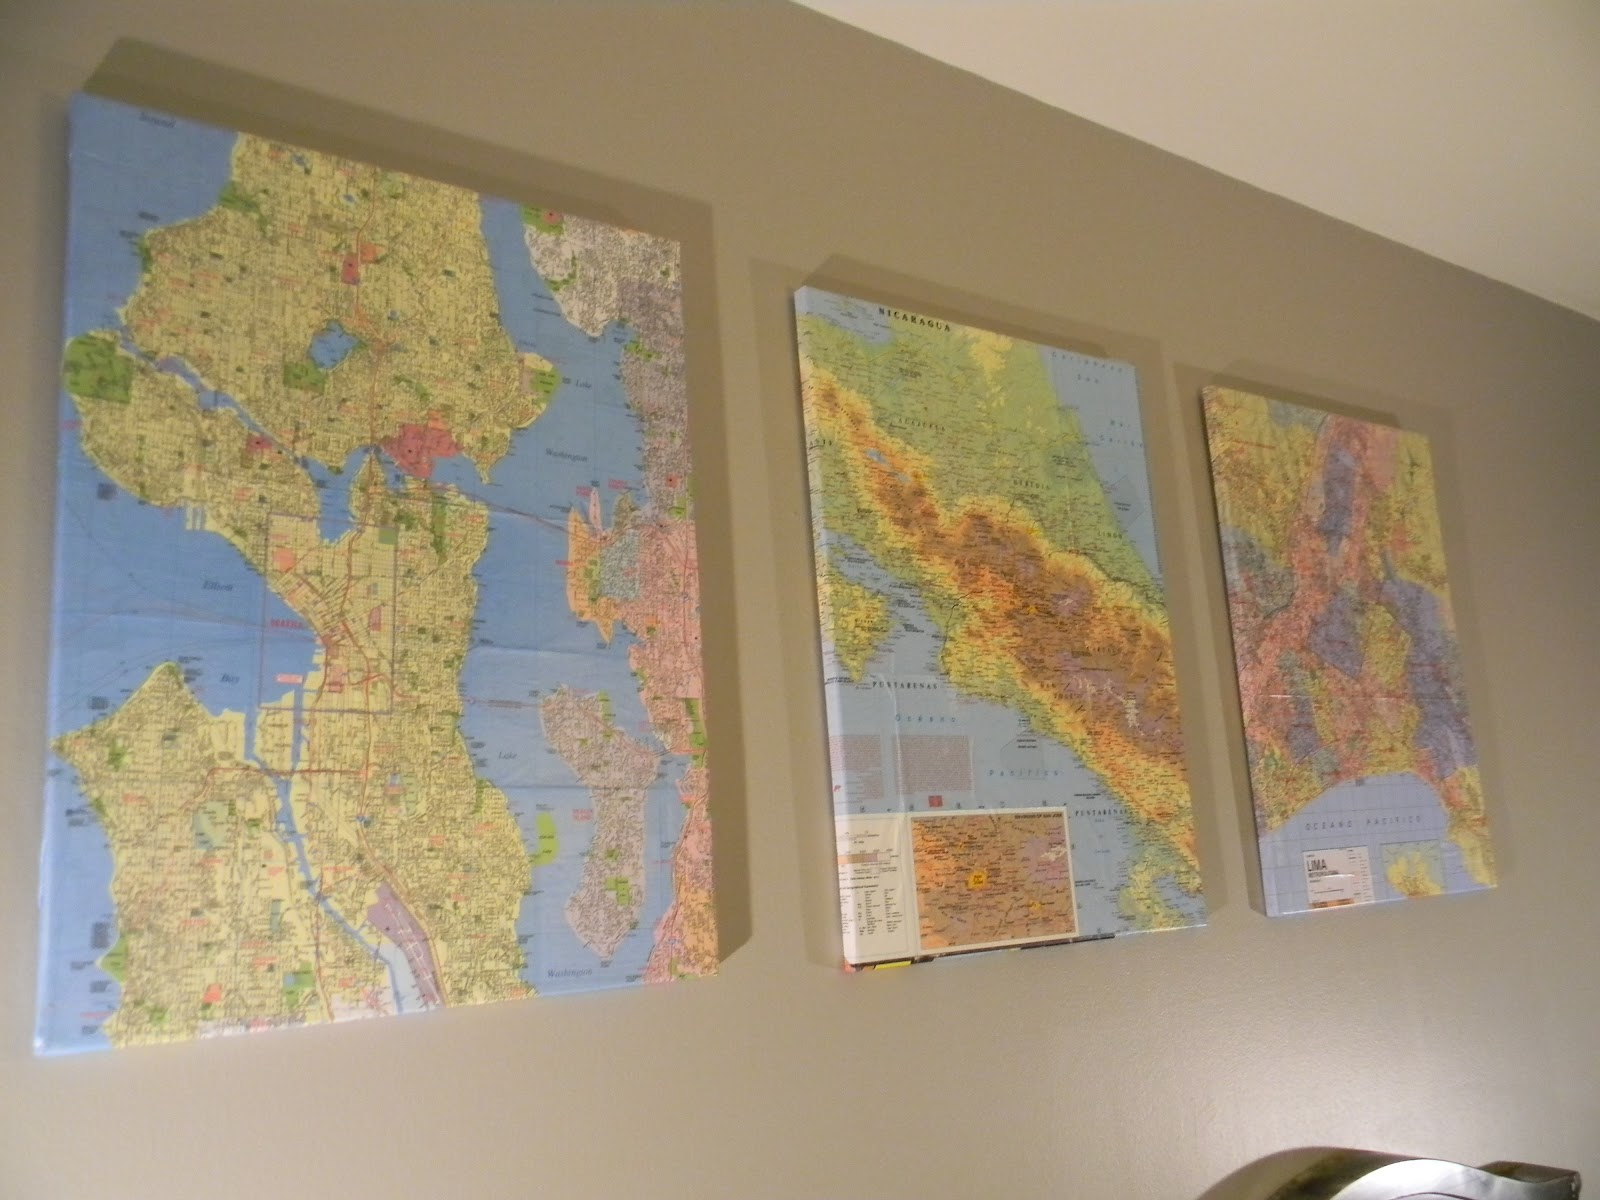 Wall art archives make something daily i bought stretched canvases from a craft store and used mod podge to attach the maps to the canvas surface gumiabroncs Gallery